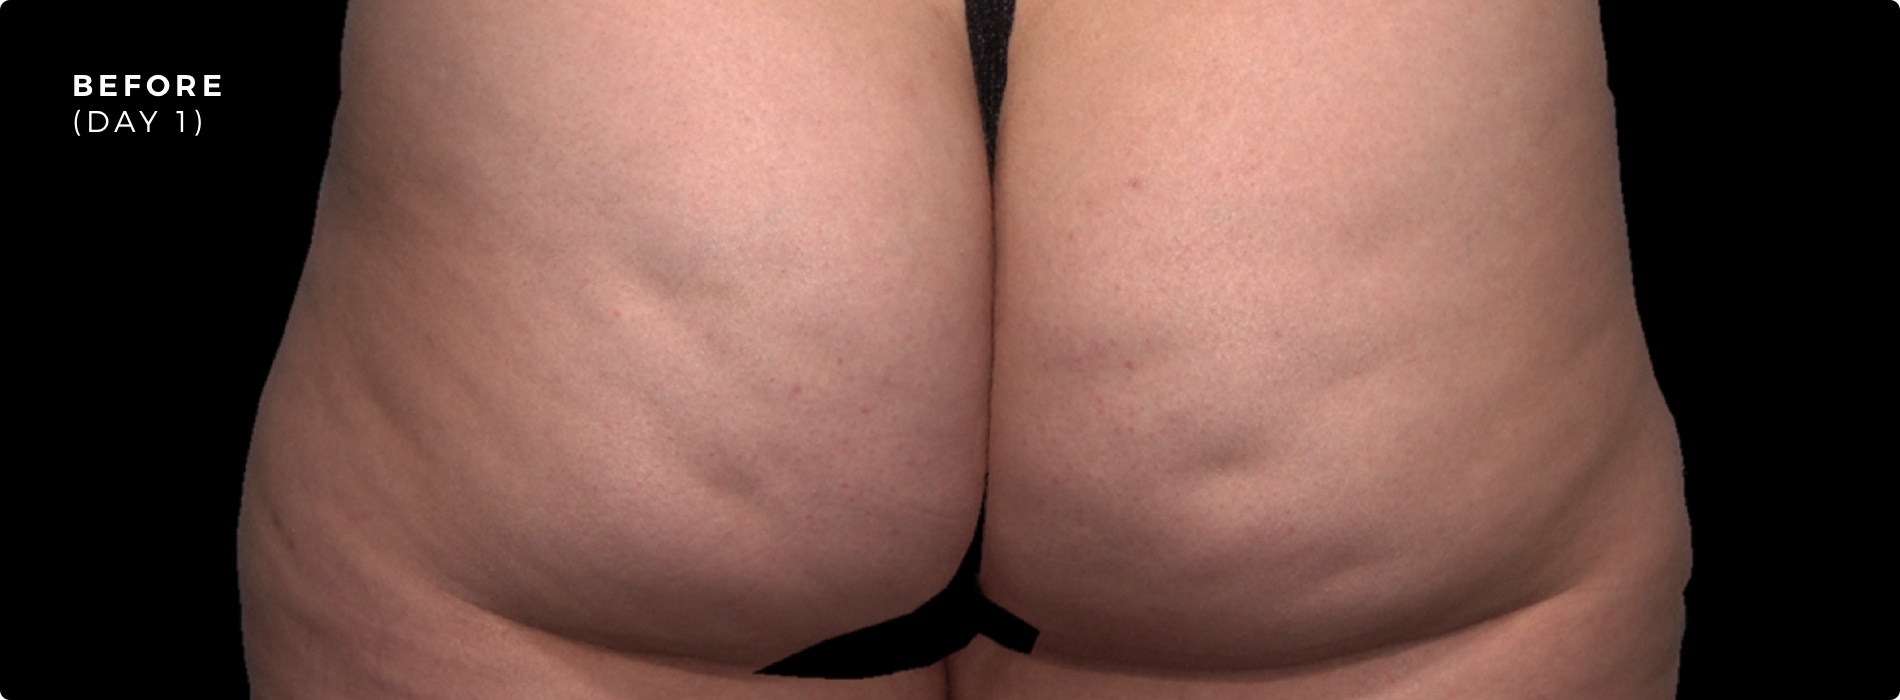 Cellulite Injections Before